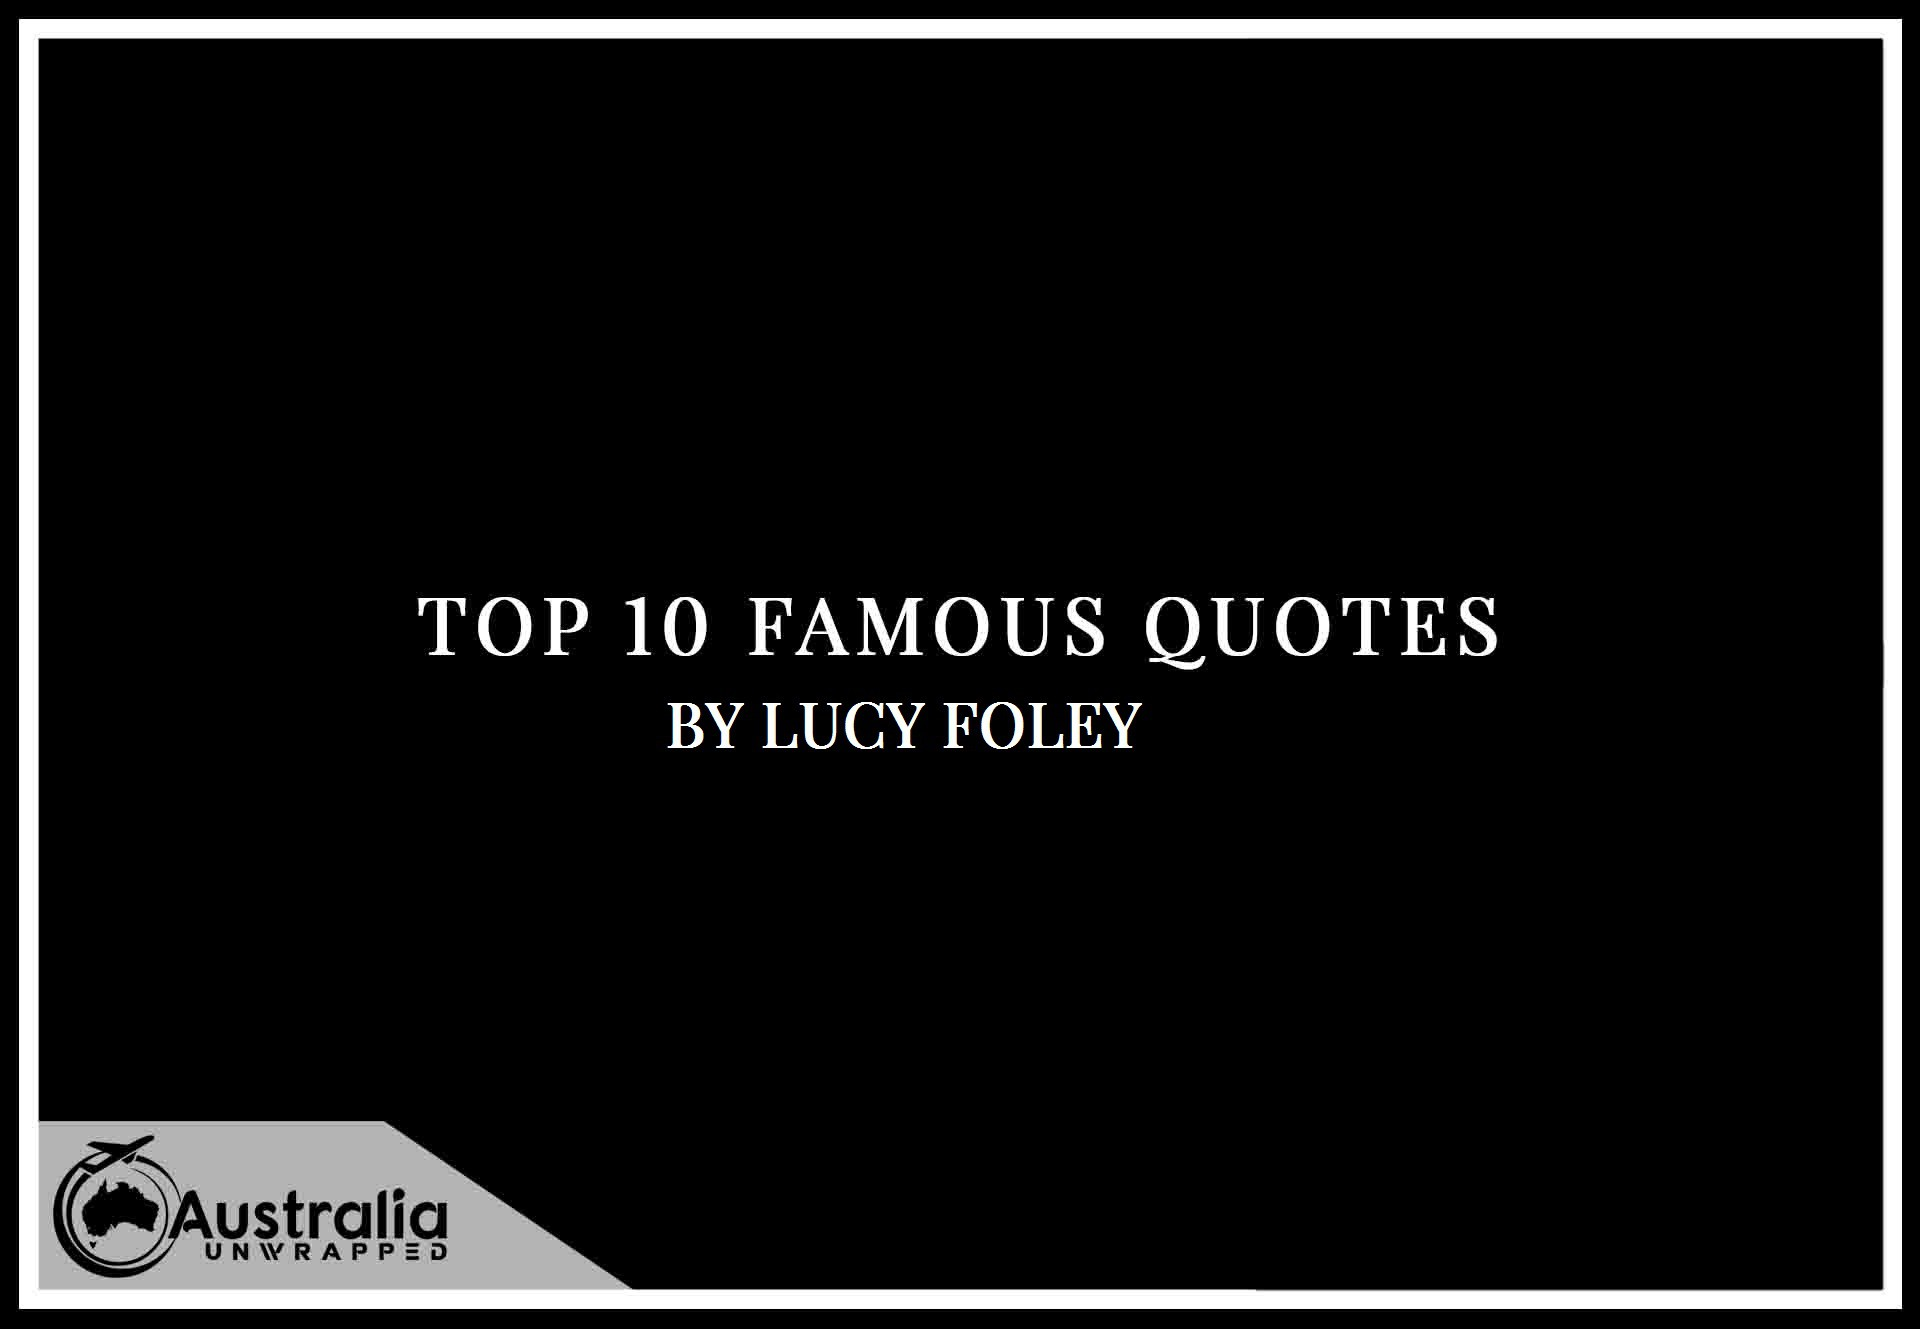 Lucy Foley's Top 10 Popular and Famous Quotes